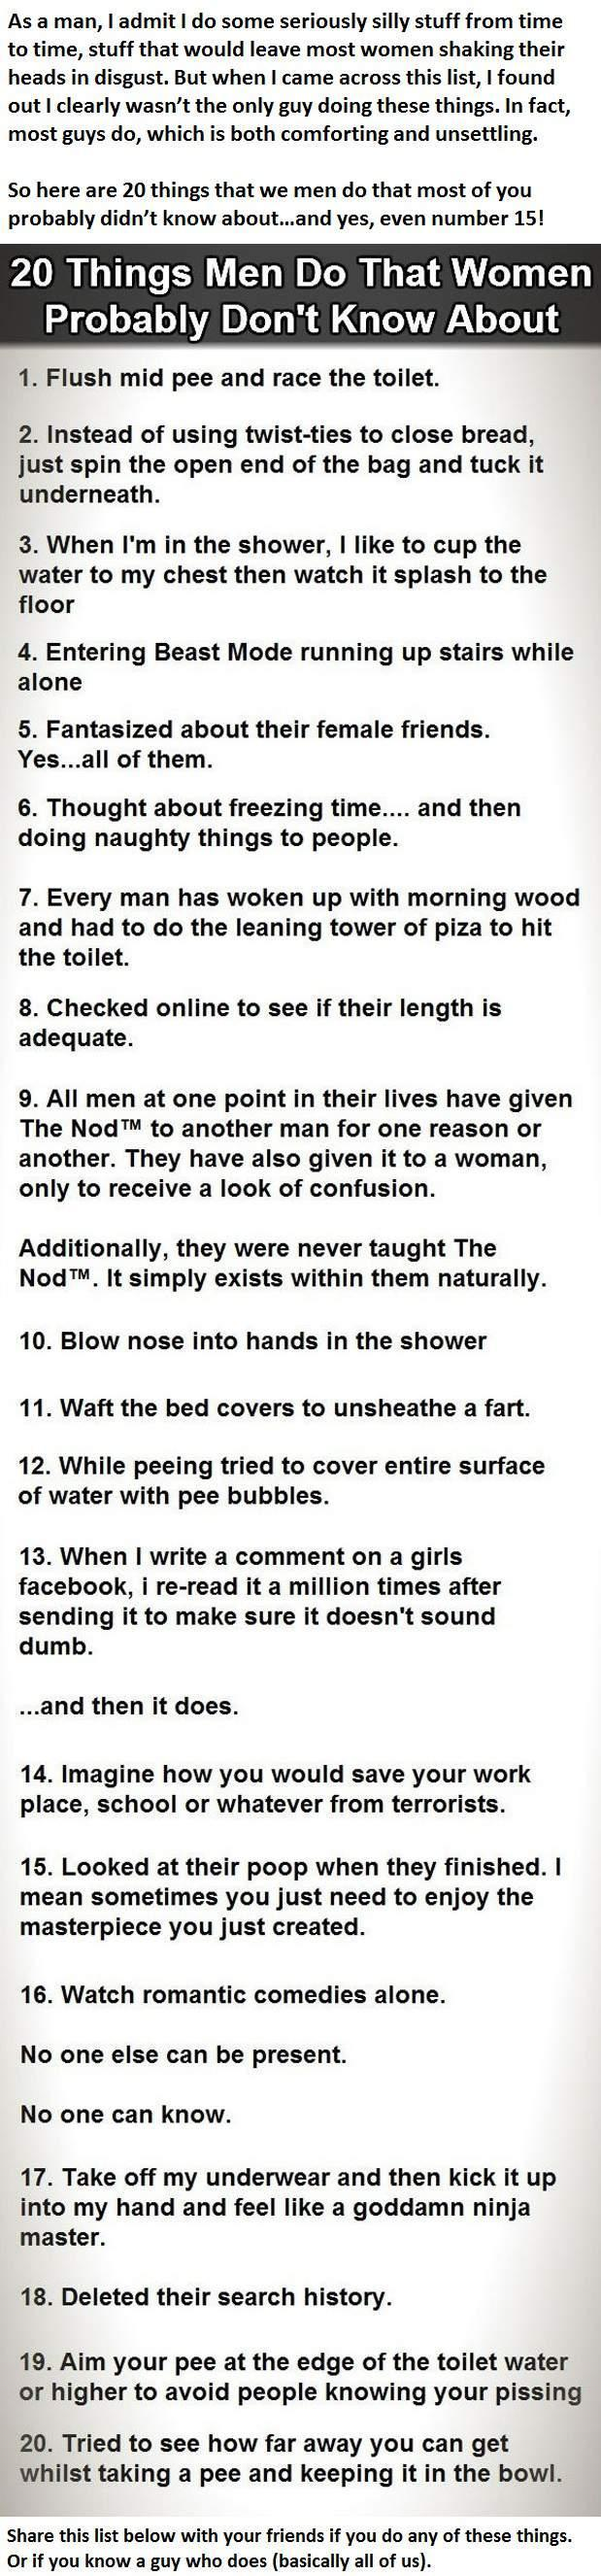 20 Things We Men Do That Most Women Don't Know About. And Yes, Even #15. -   Misc